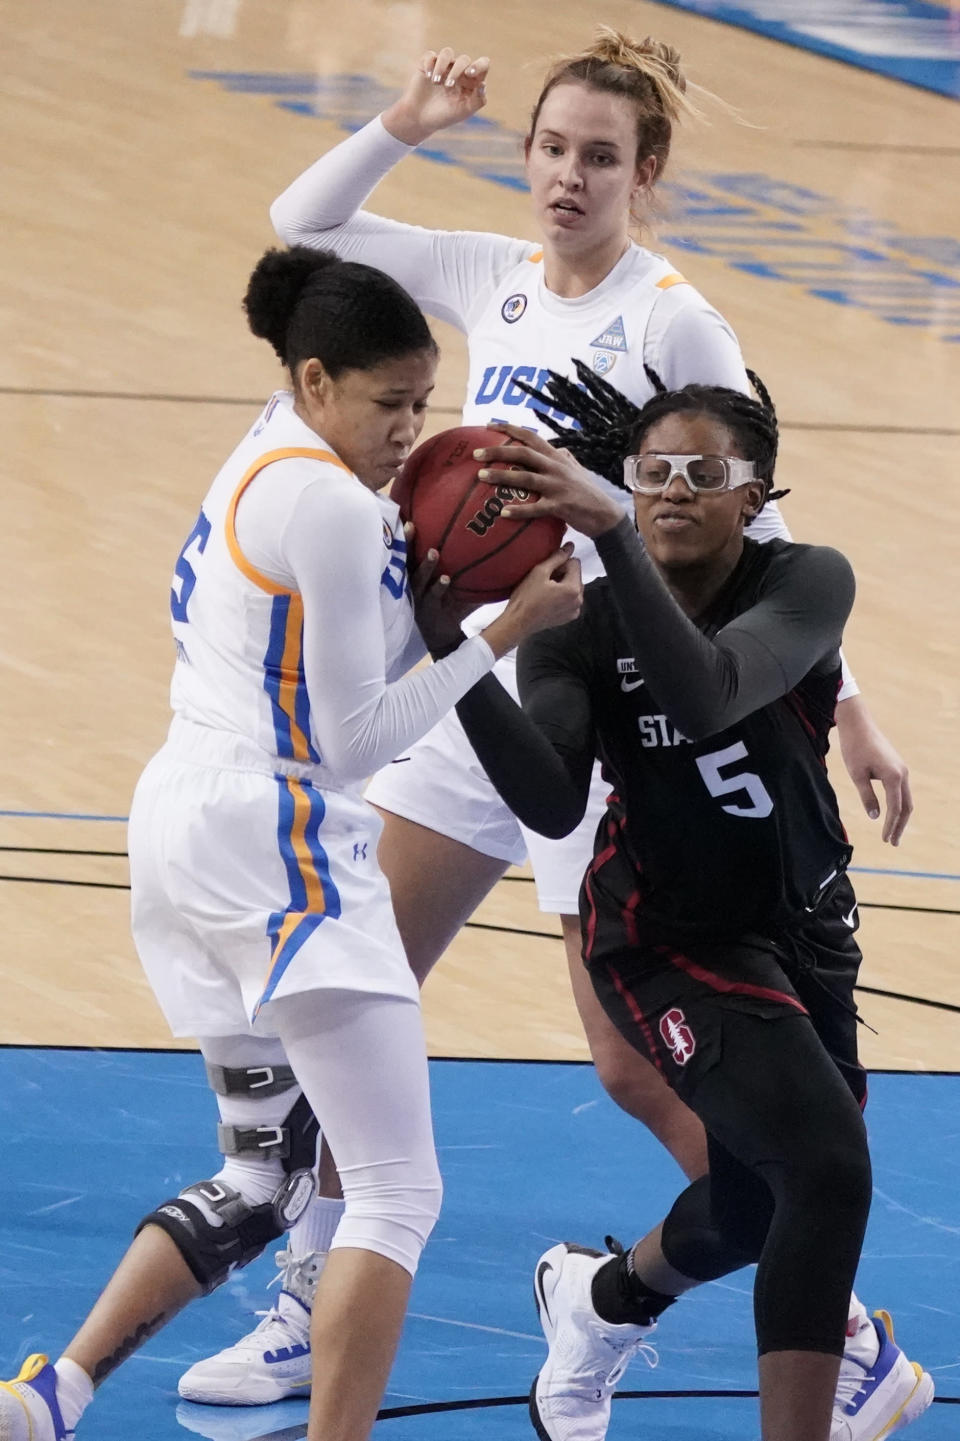 Stanford forward Francesca Belibi, right, works for a rebound against UCLA guard Camryn Brown during the first half of an NCAA college basketball game Monday, Dec. 21, 2020, in Los Angeles. (AP Photo/Marcio Jose Sanchez)